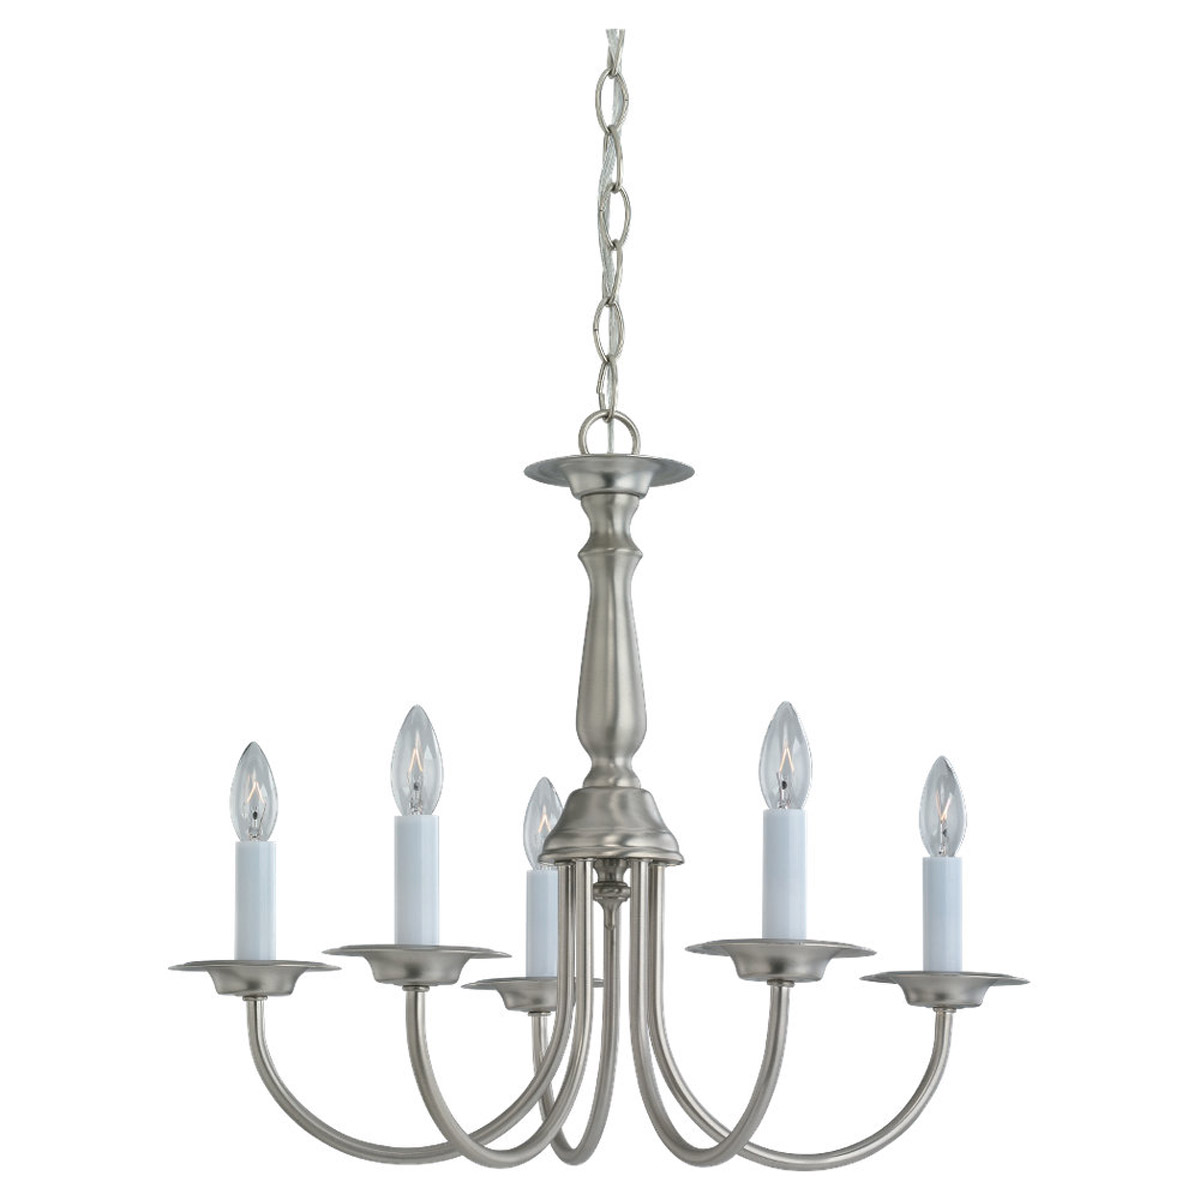 Sea Gull Lighting Traditional 5 Light Chandelier in Brushed Nickel 3916-962